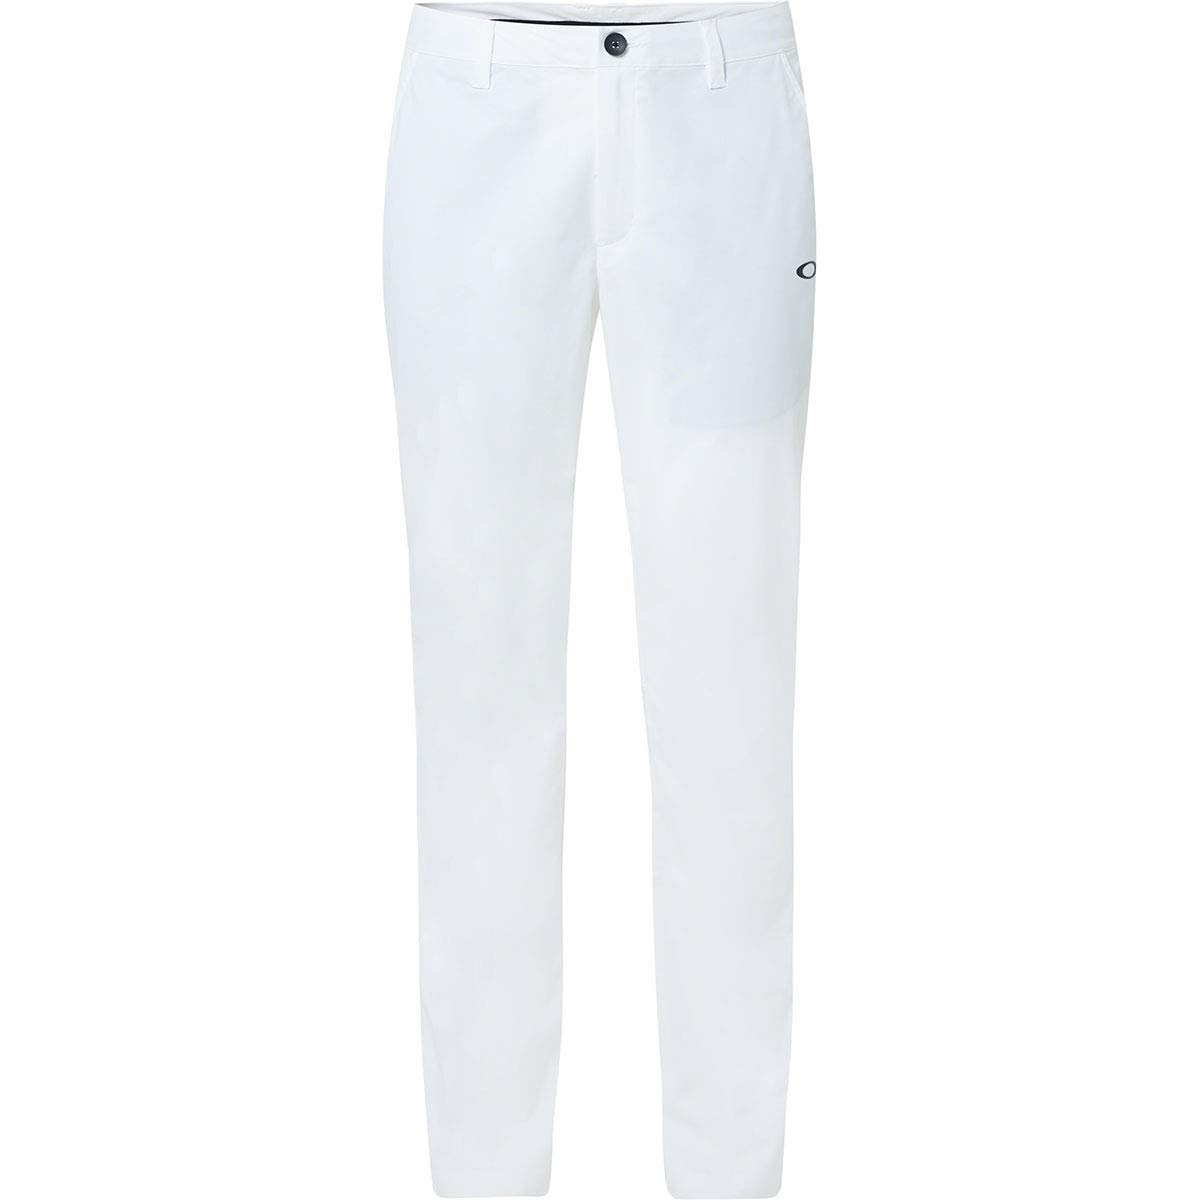 Oakley Men's Chino Icon Golf Pants,28,White by Oakley